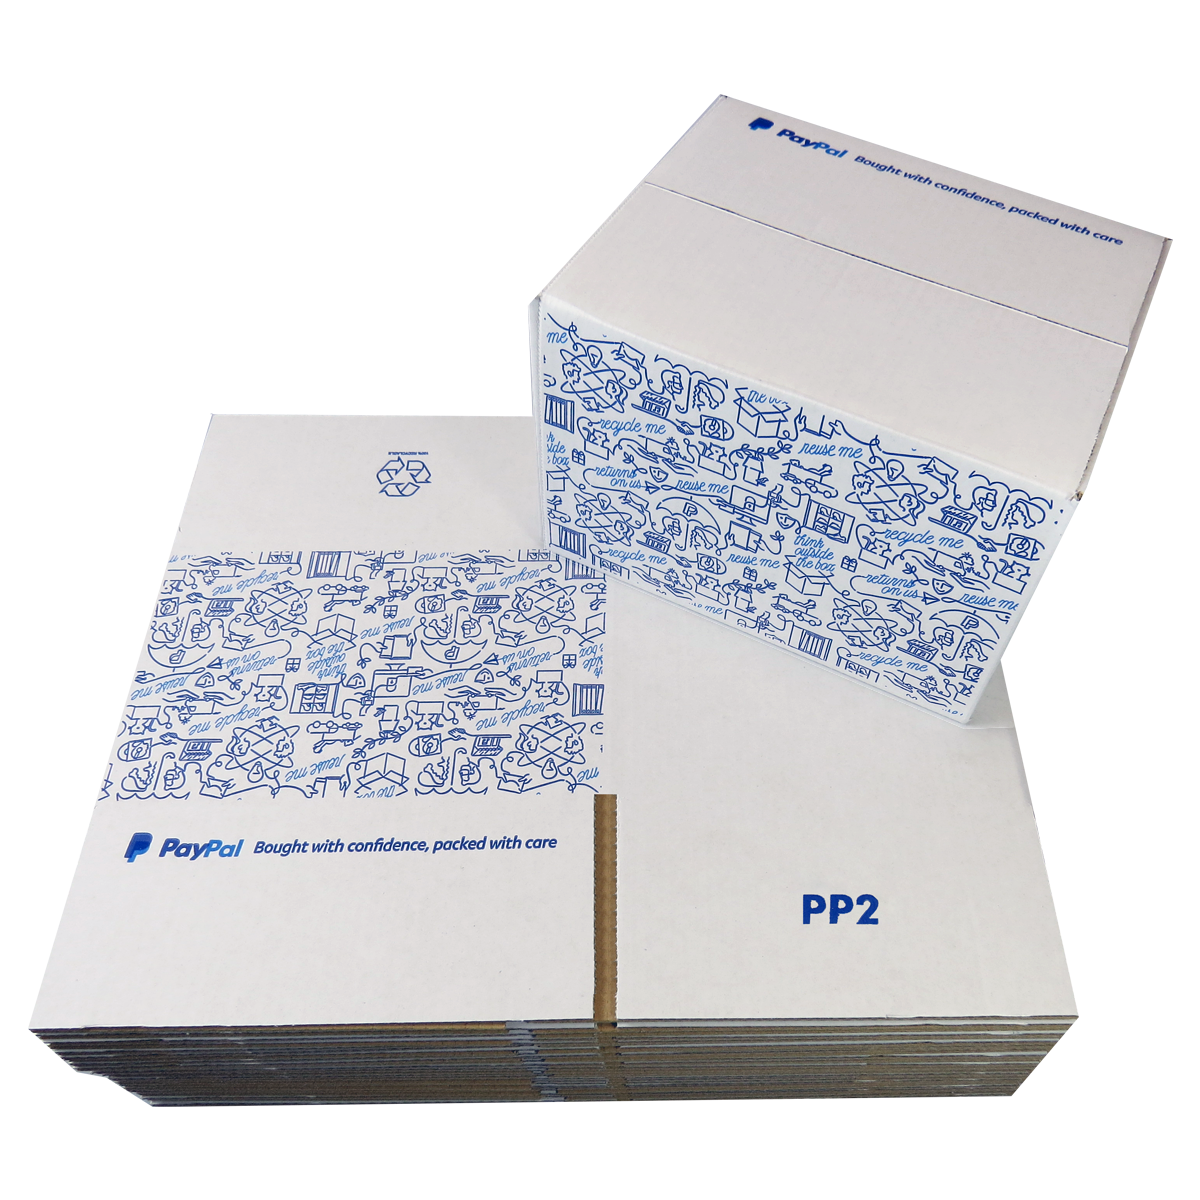 100 x PP2 PayPal Branded Quality White Single Wall Cardboard Postal Mailing Boxes 215x180x135mm